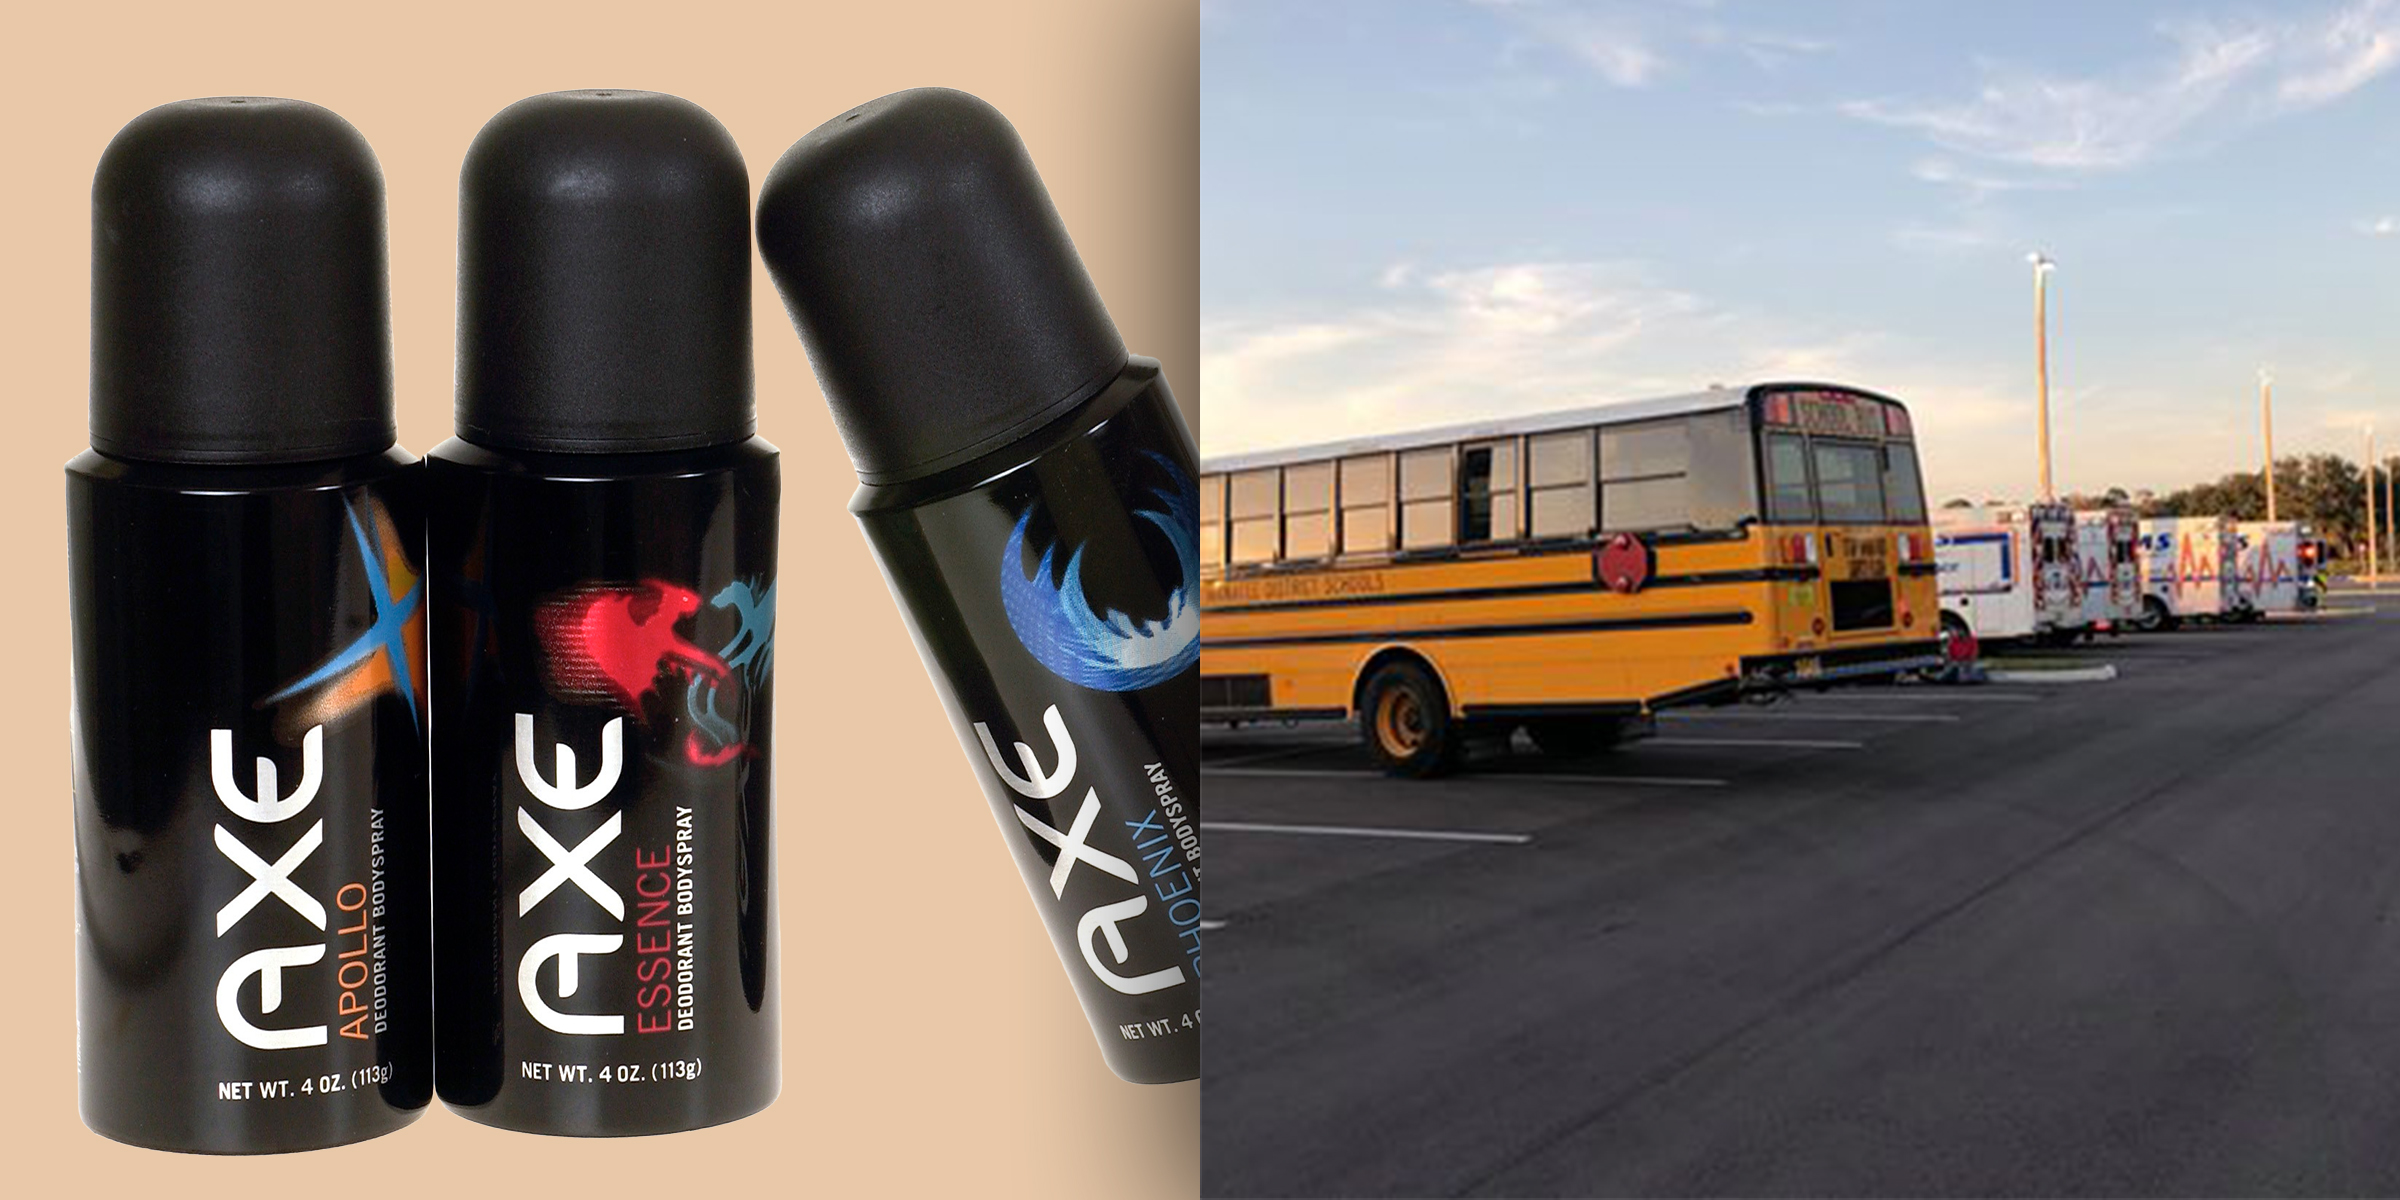 School bus evacuated, 911 called over the smell of too much Axe Body Spray